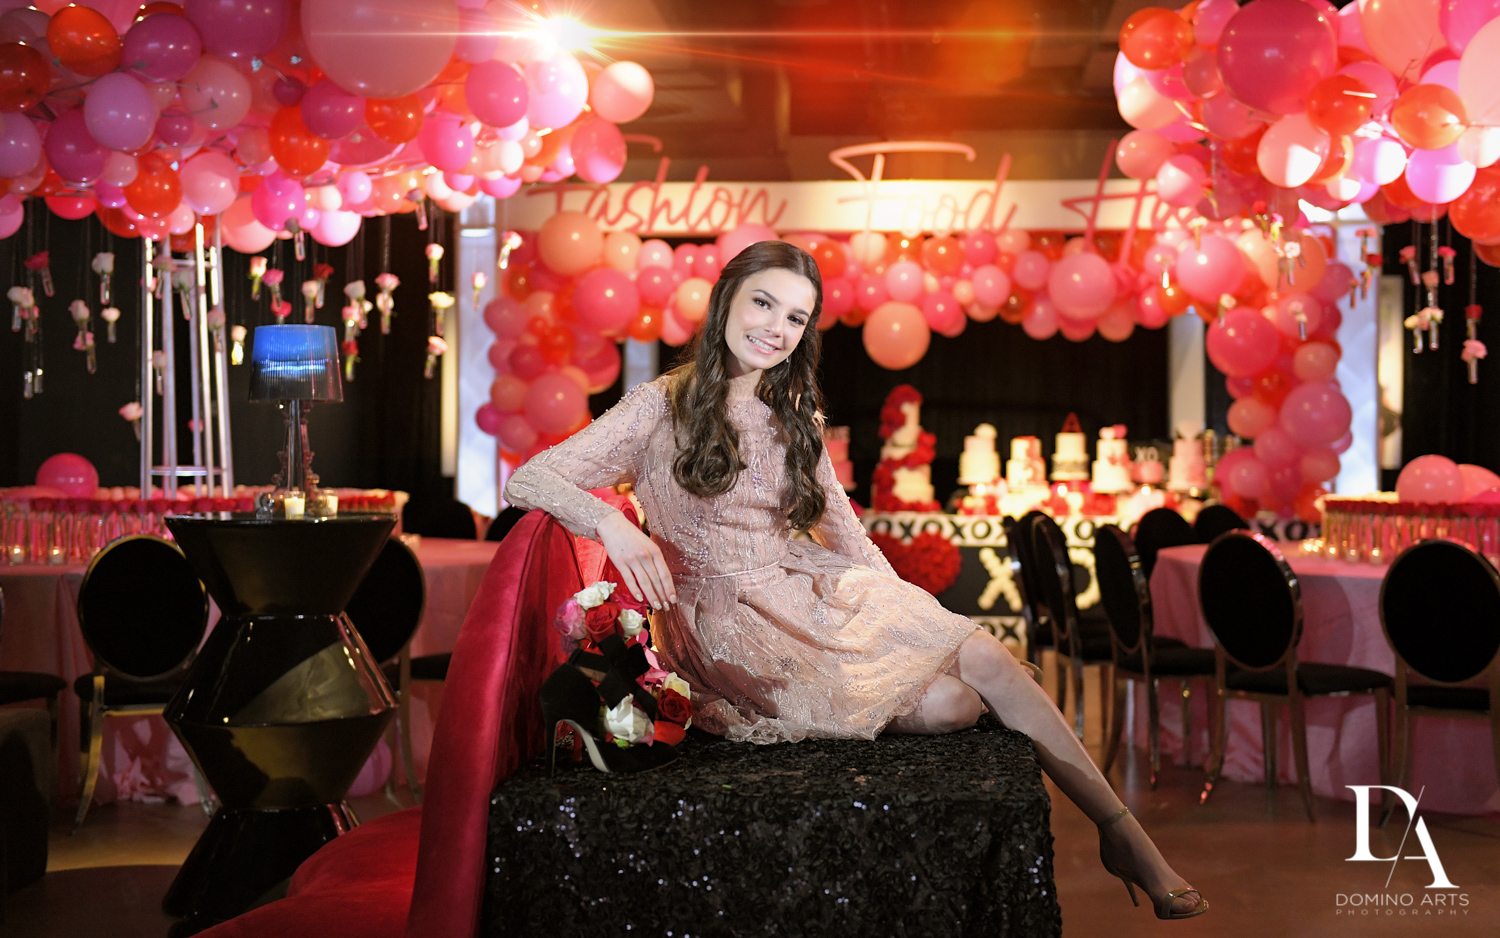 balloons at Fashion Theme Bat Mitzvah at Gallery of Amazing Things by Domino Arts Photography